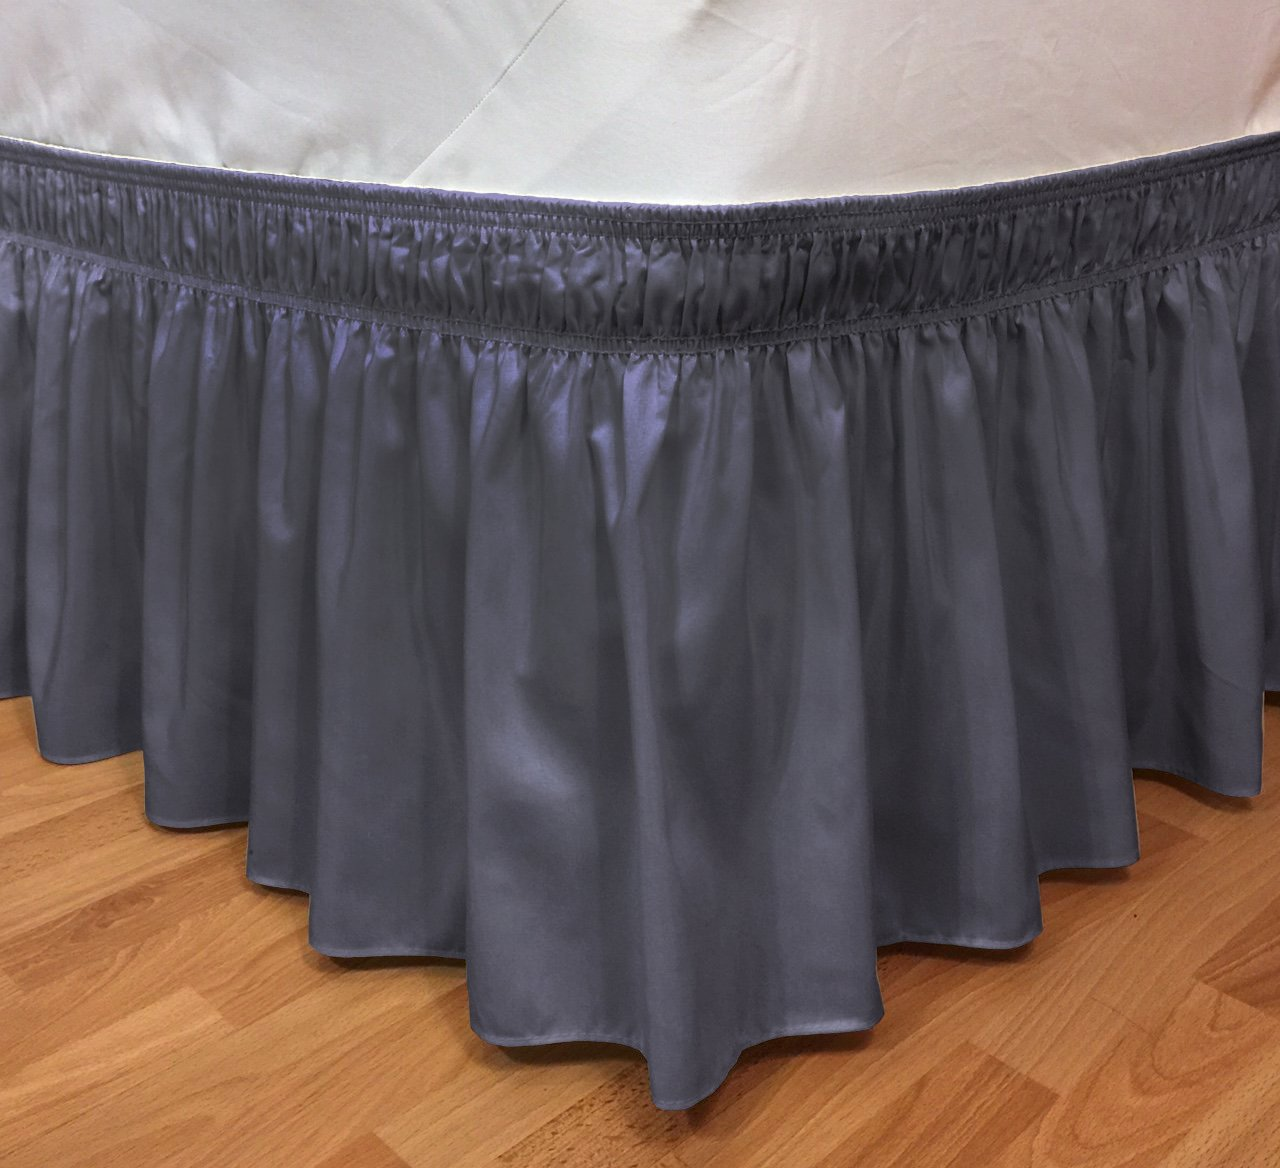 CT DISCOUNT STORE Elastic Ruffle Bed Skirt Easy Warp Around, Bed Skirt Pins Included By (Twin/Full, Navy)